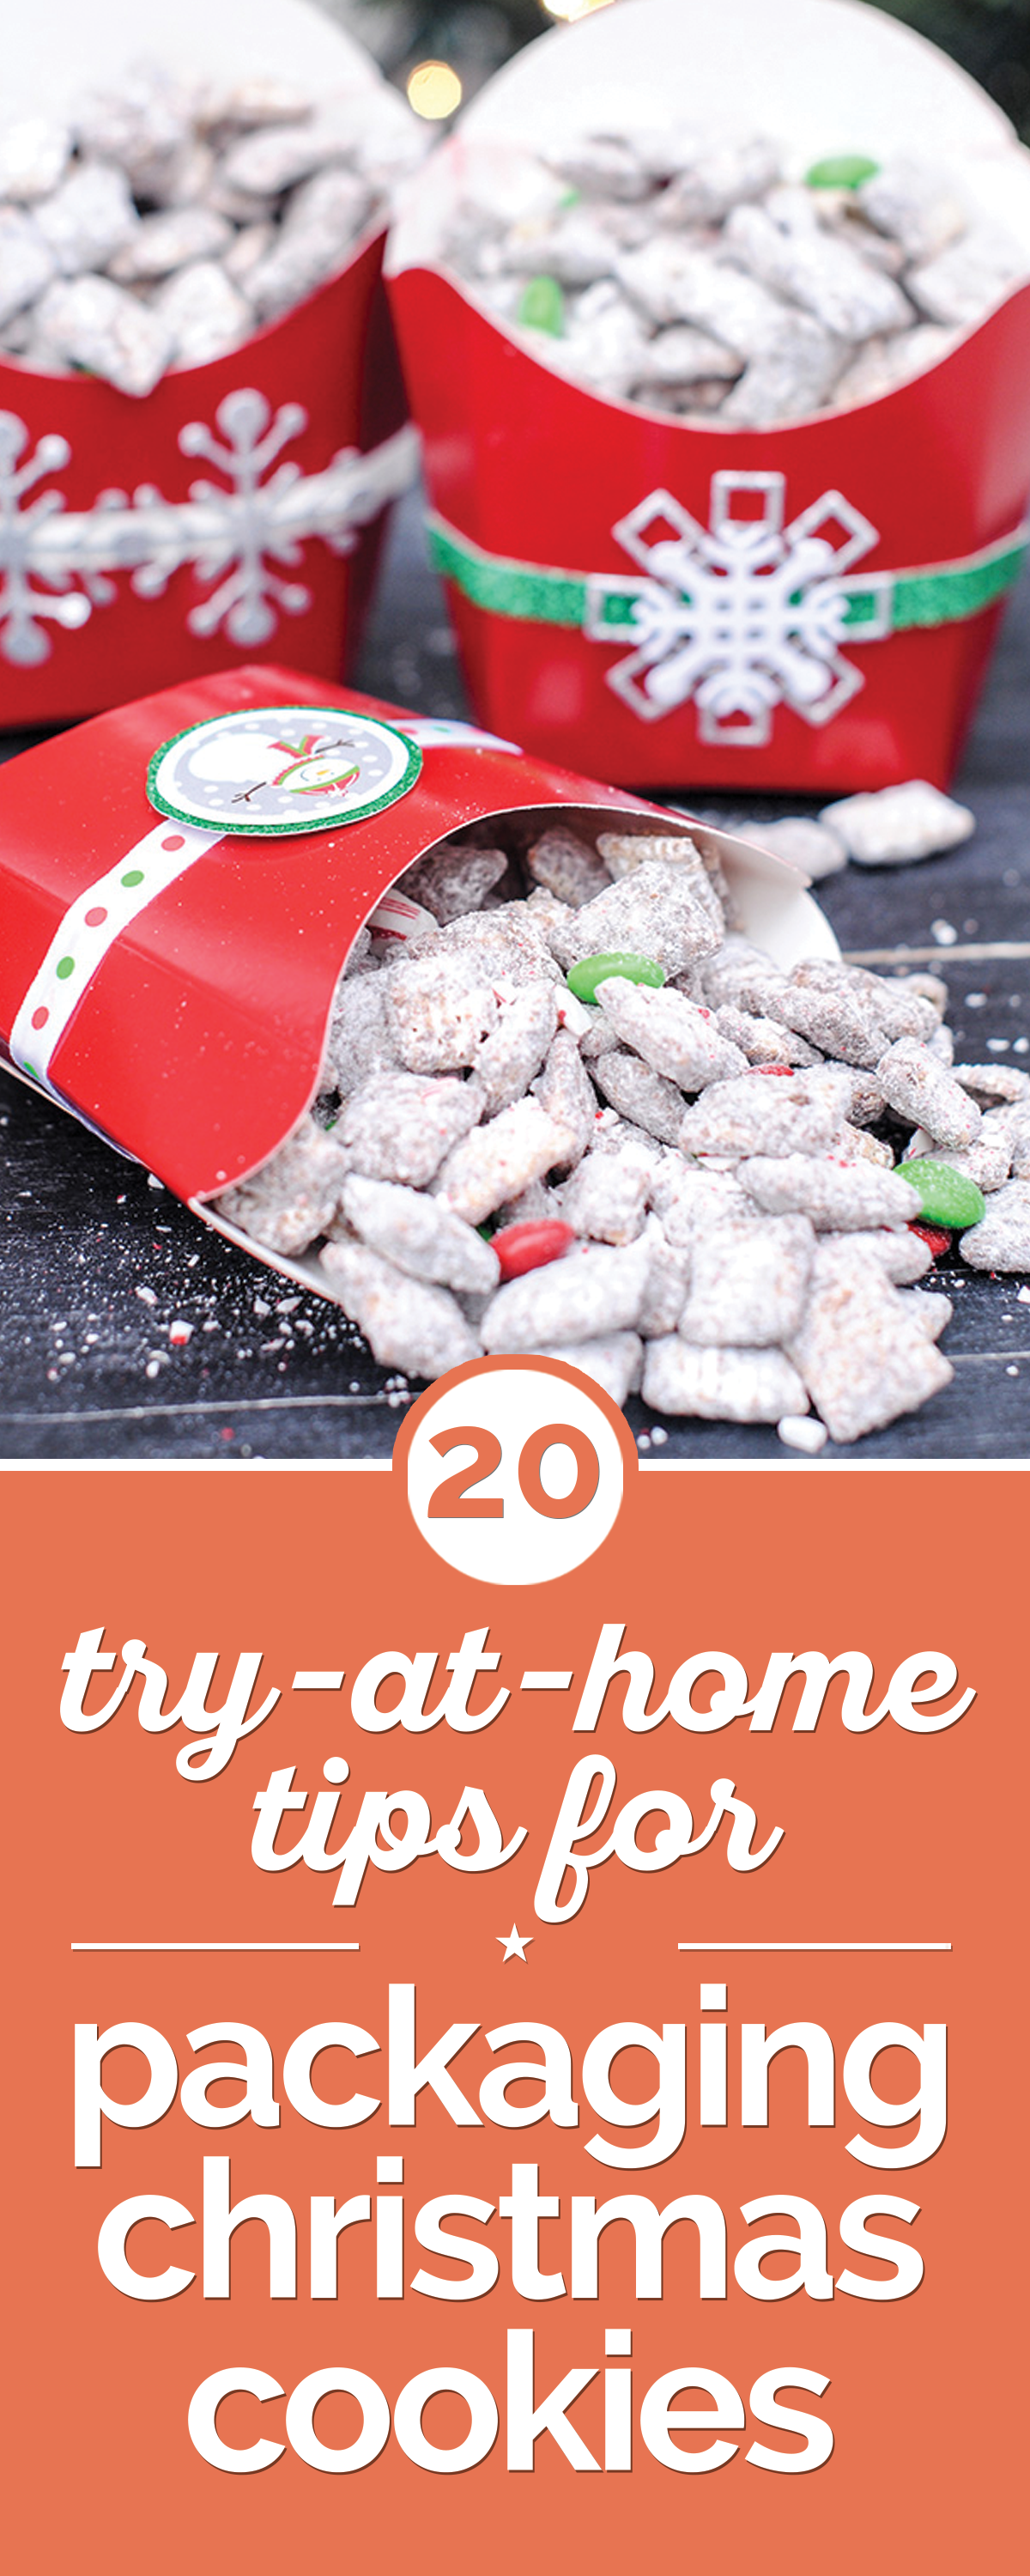 20 Cute Ideas for Packaging Christmas Cookies | Christmas ...